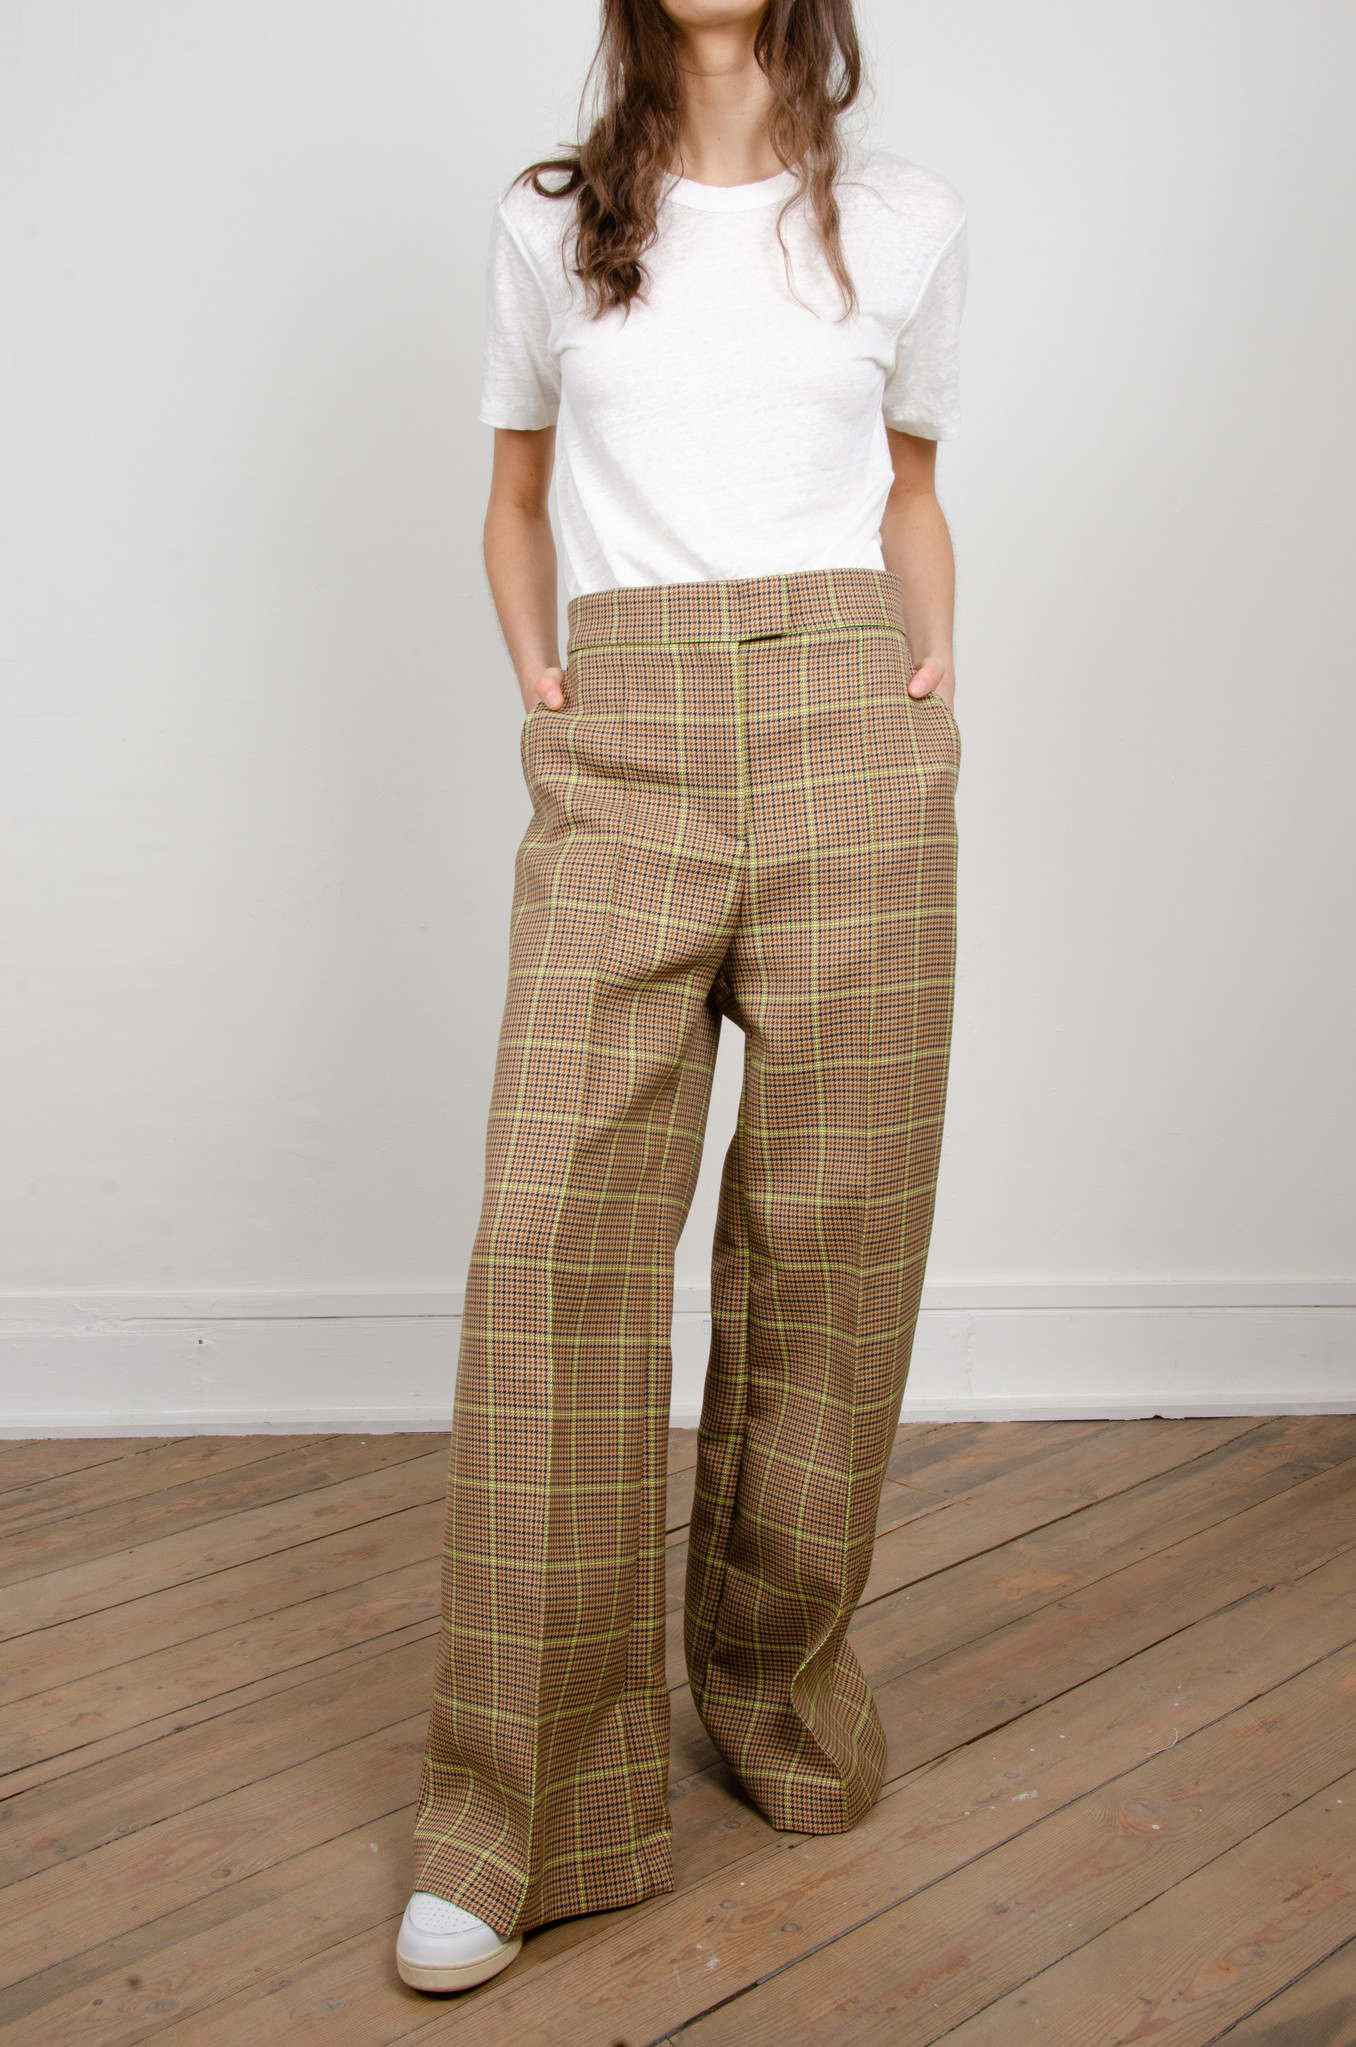 WIDE NEON CHECKERED TROUSERS-1